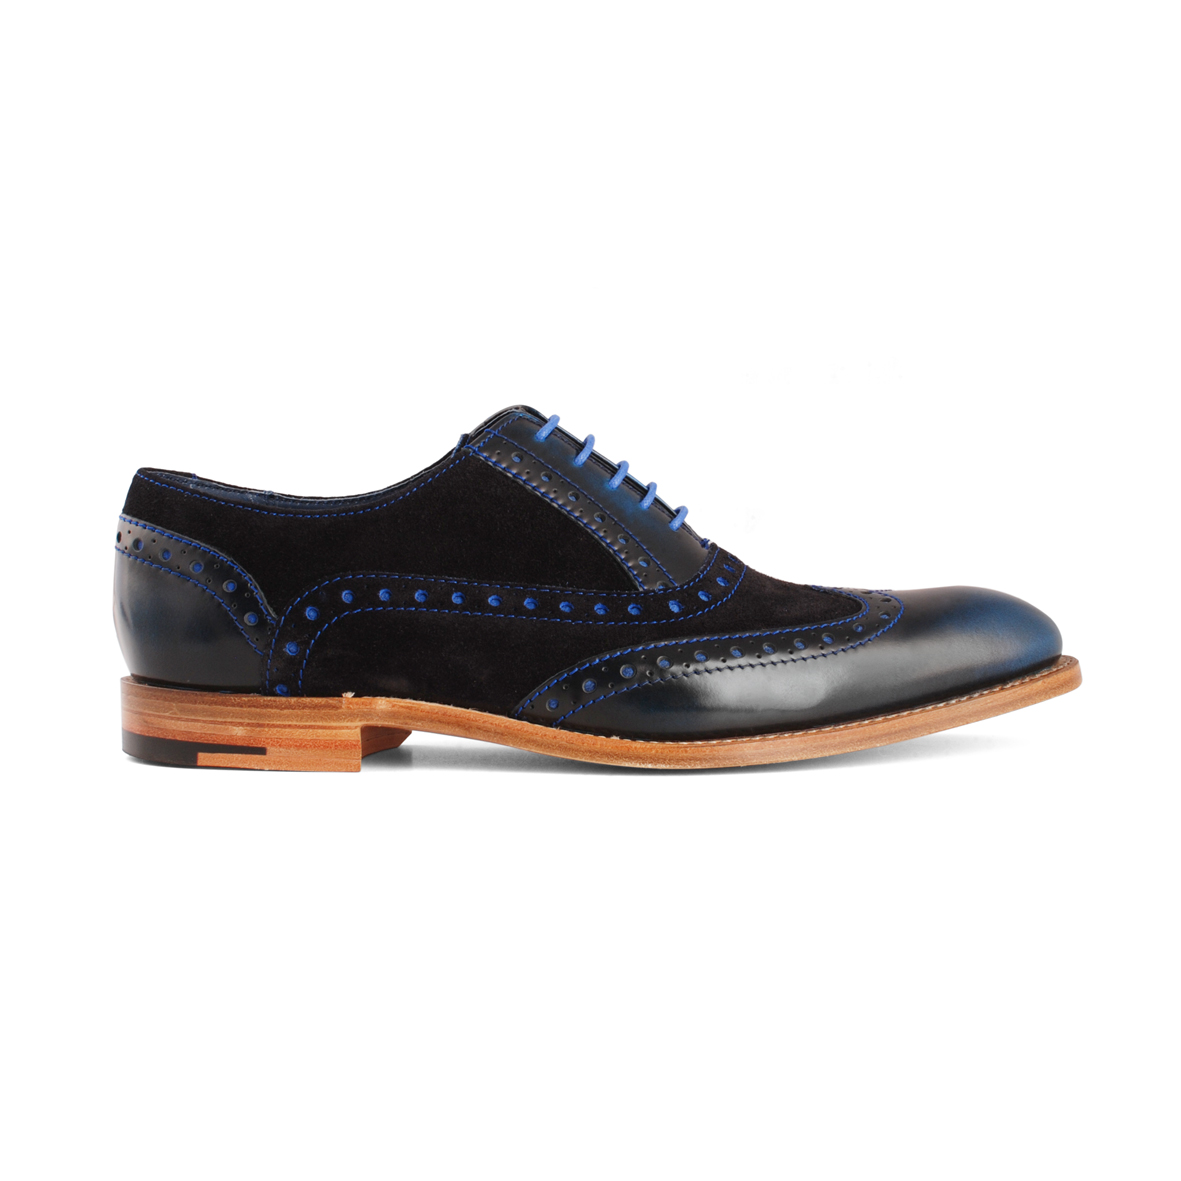 Barker Grant Navy Suede/leather shoes